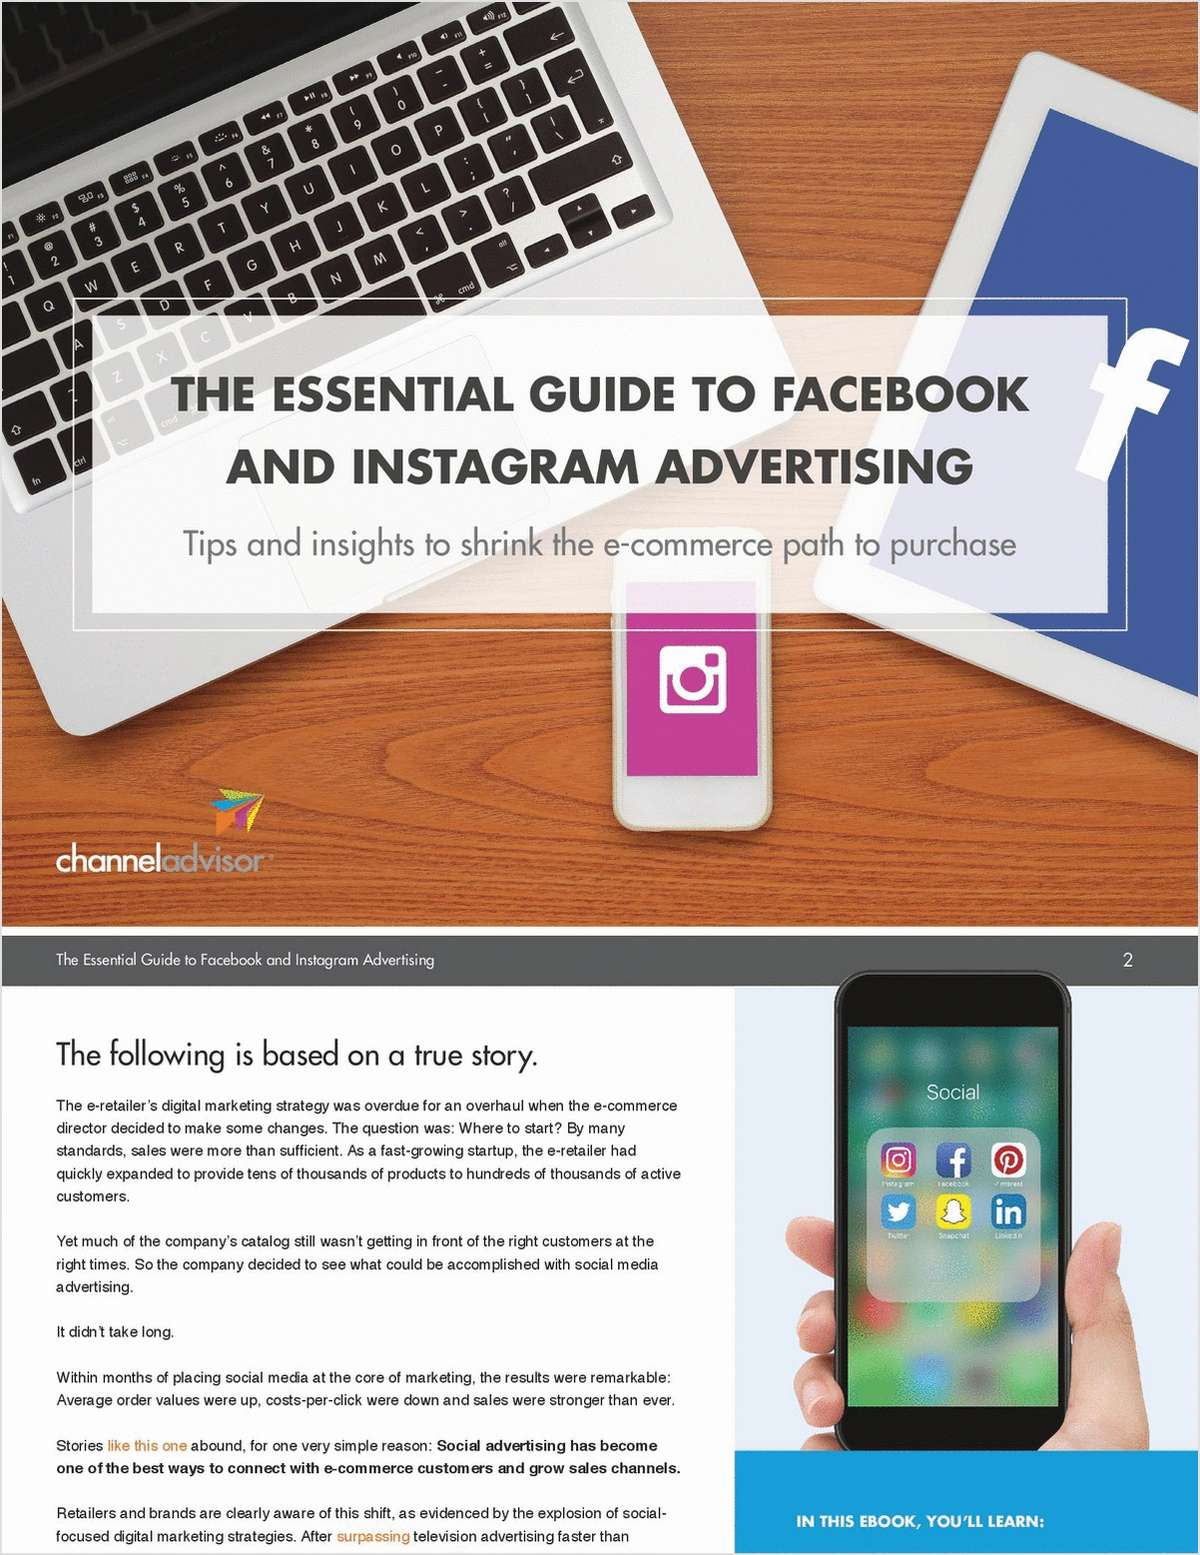 The Essential Guide to Facebook and Instagram Advertising